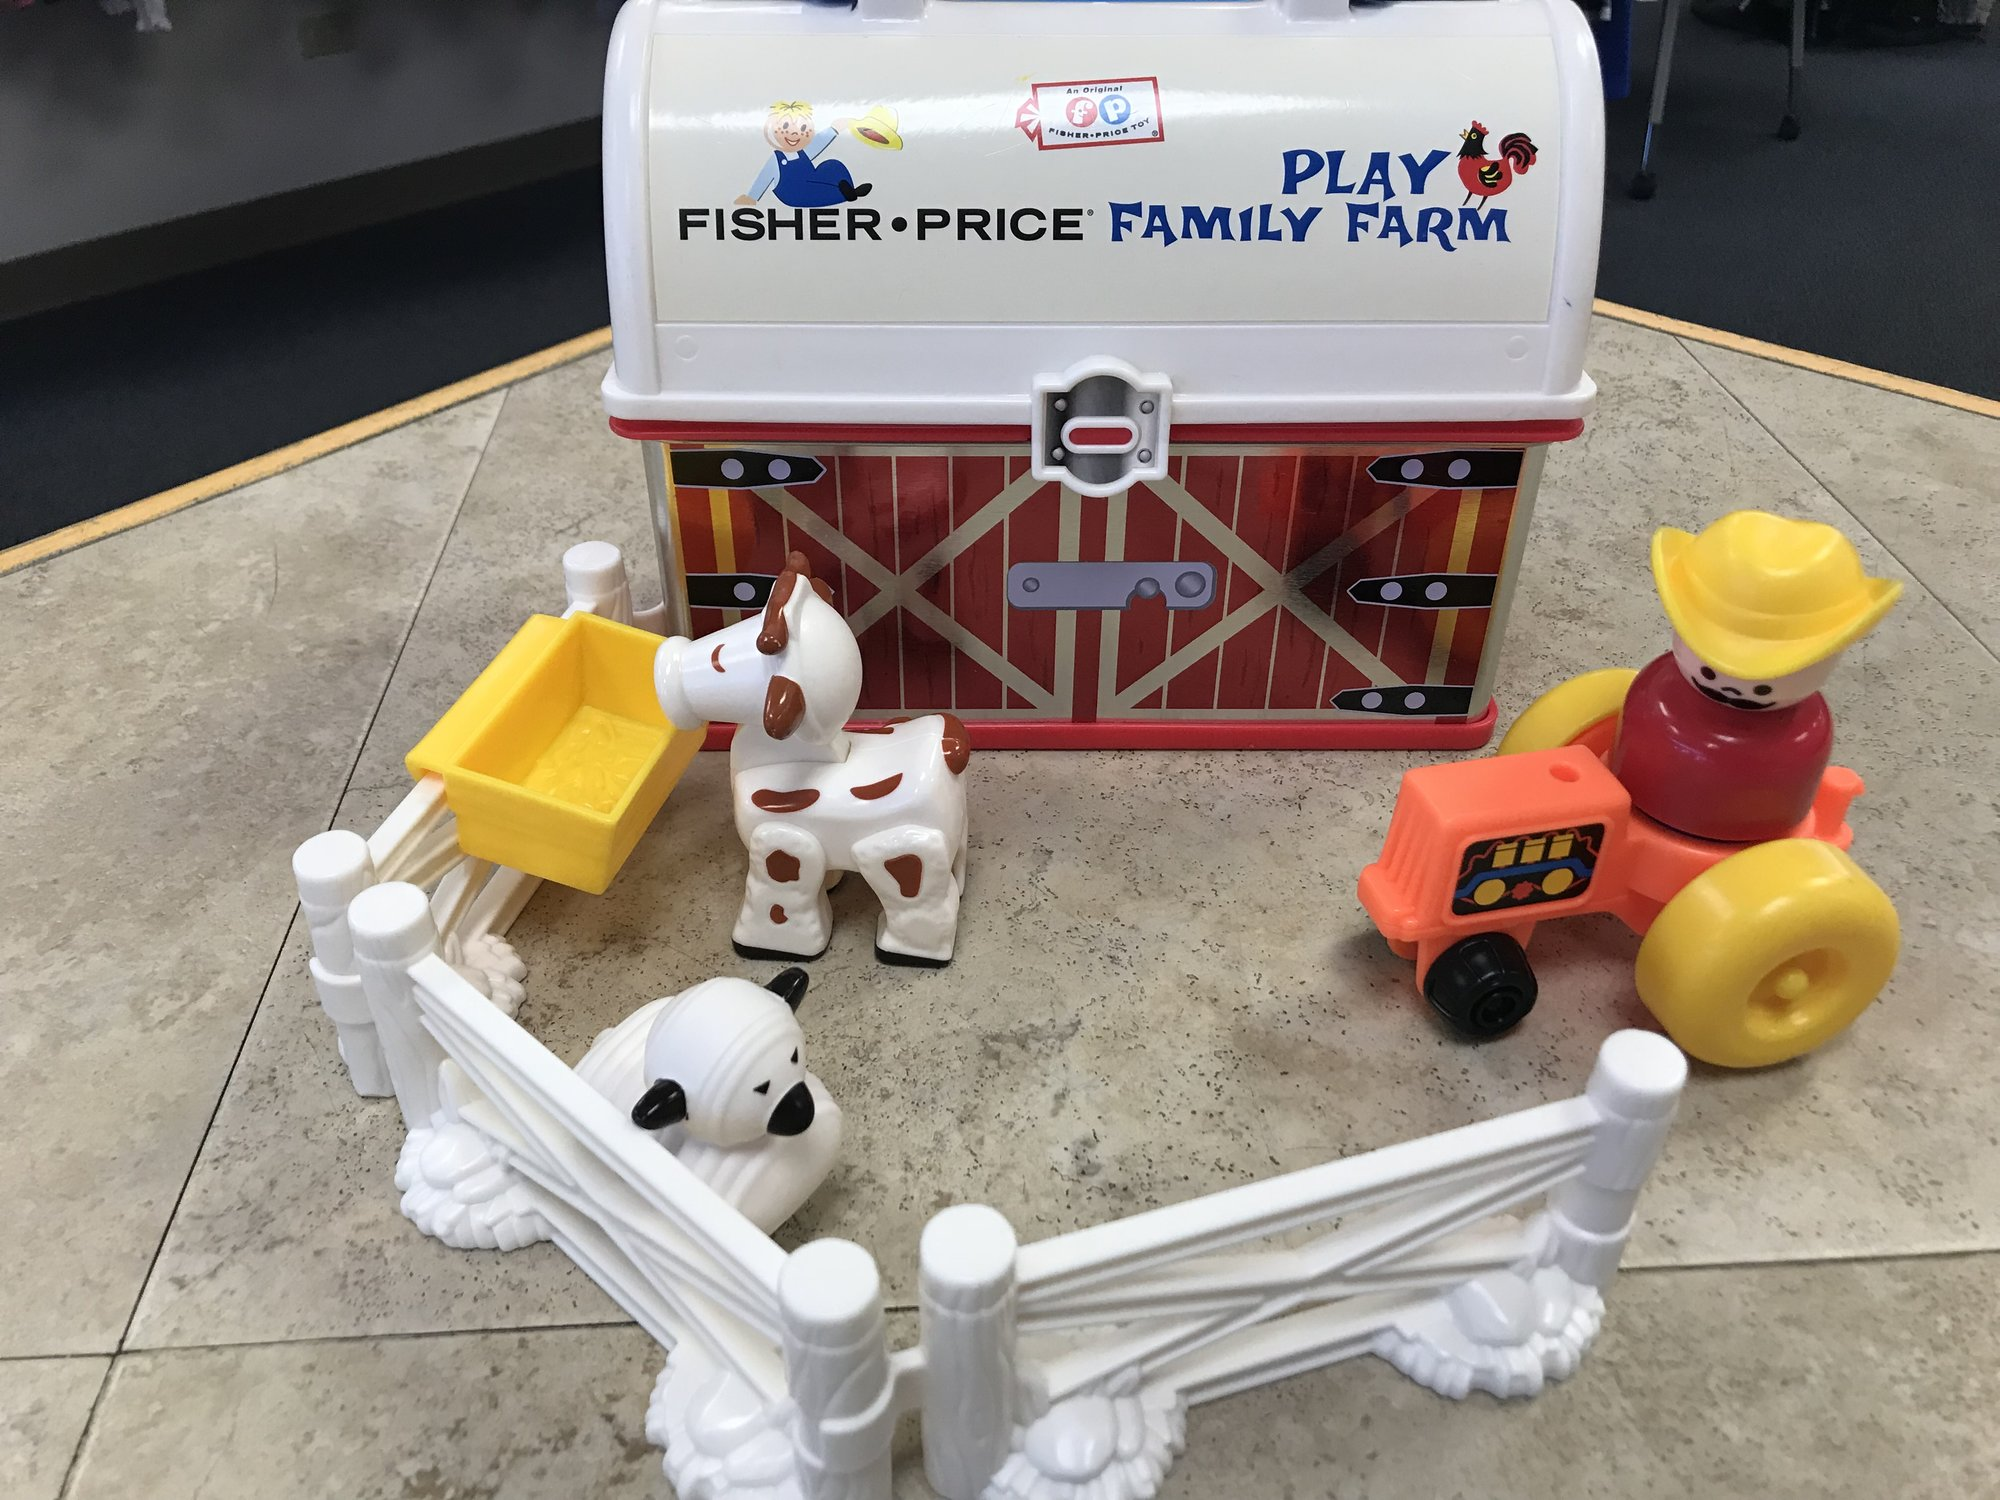 Fisher Price Play Family Farm, vintage style, NO SHIPPING-in store pick up only